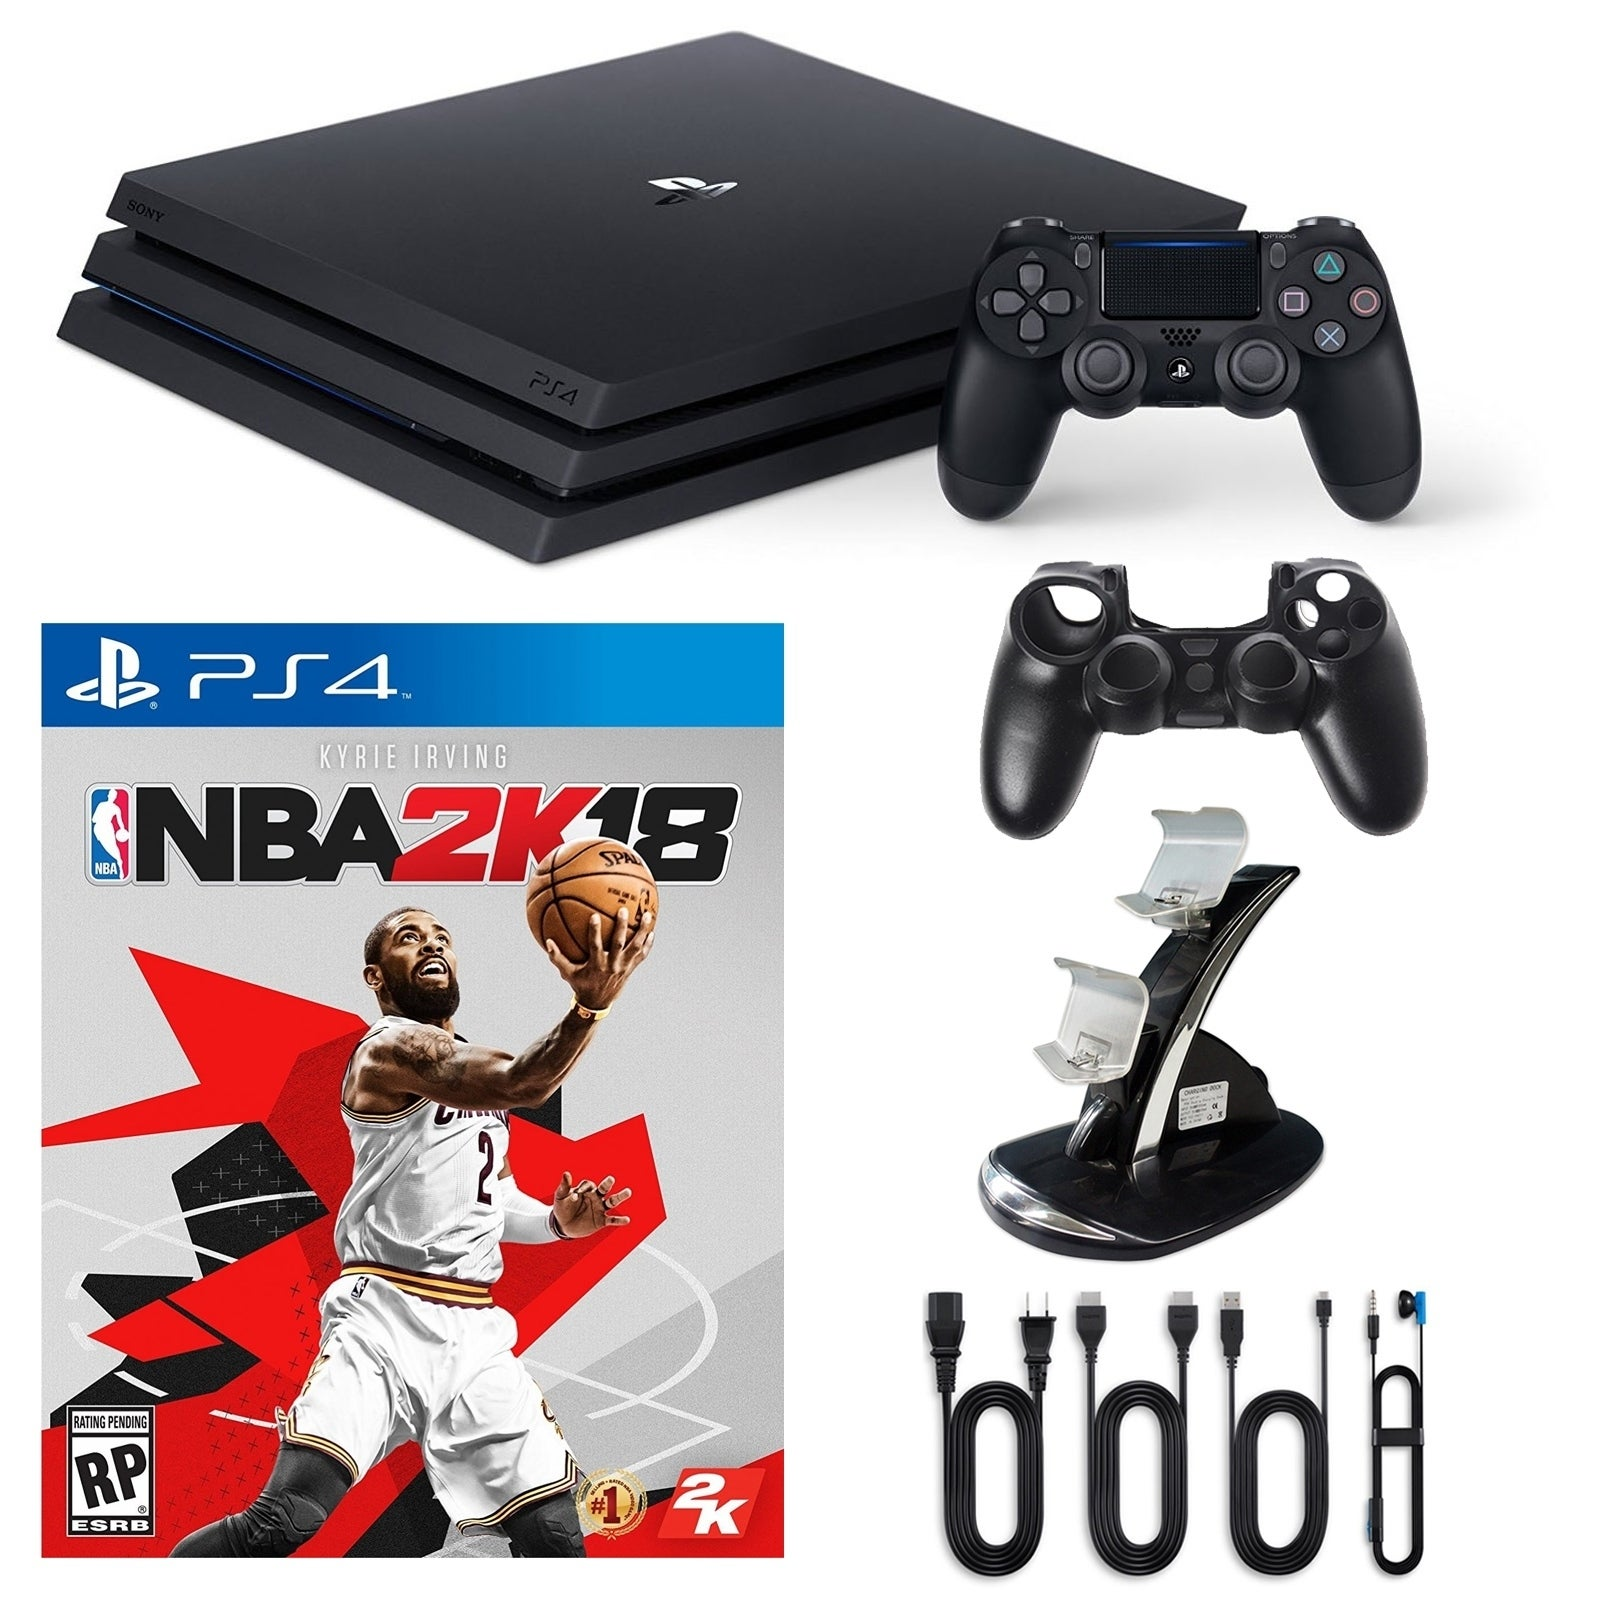 Playstation 4 1TB Pro Console with NBA 2K and Accessories...